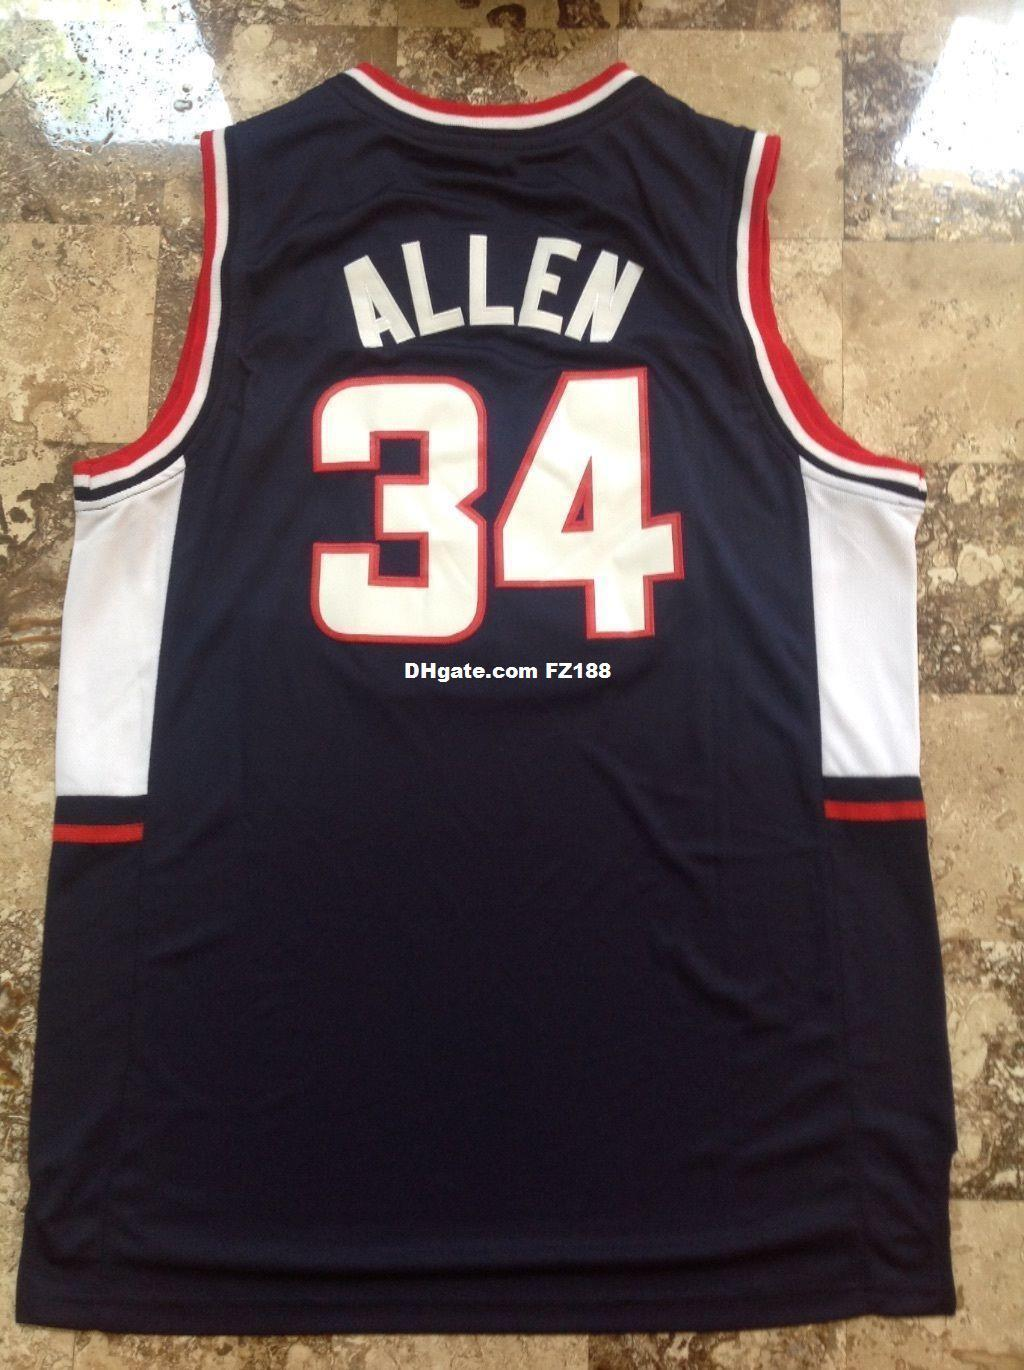 2019 Ray Allen  34 Connecticut NCAA Sewn Stitched Basketball Swingman Jersey  Black XS 6XL From Diyjerseys 272f55d4ef7c